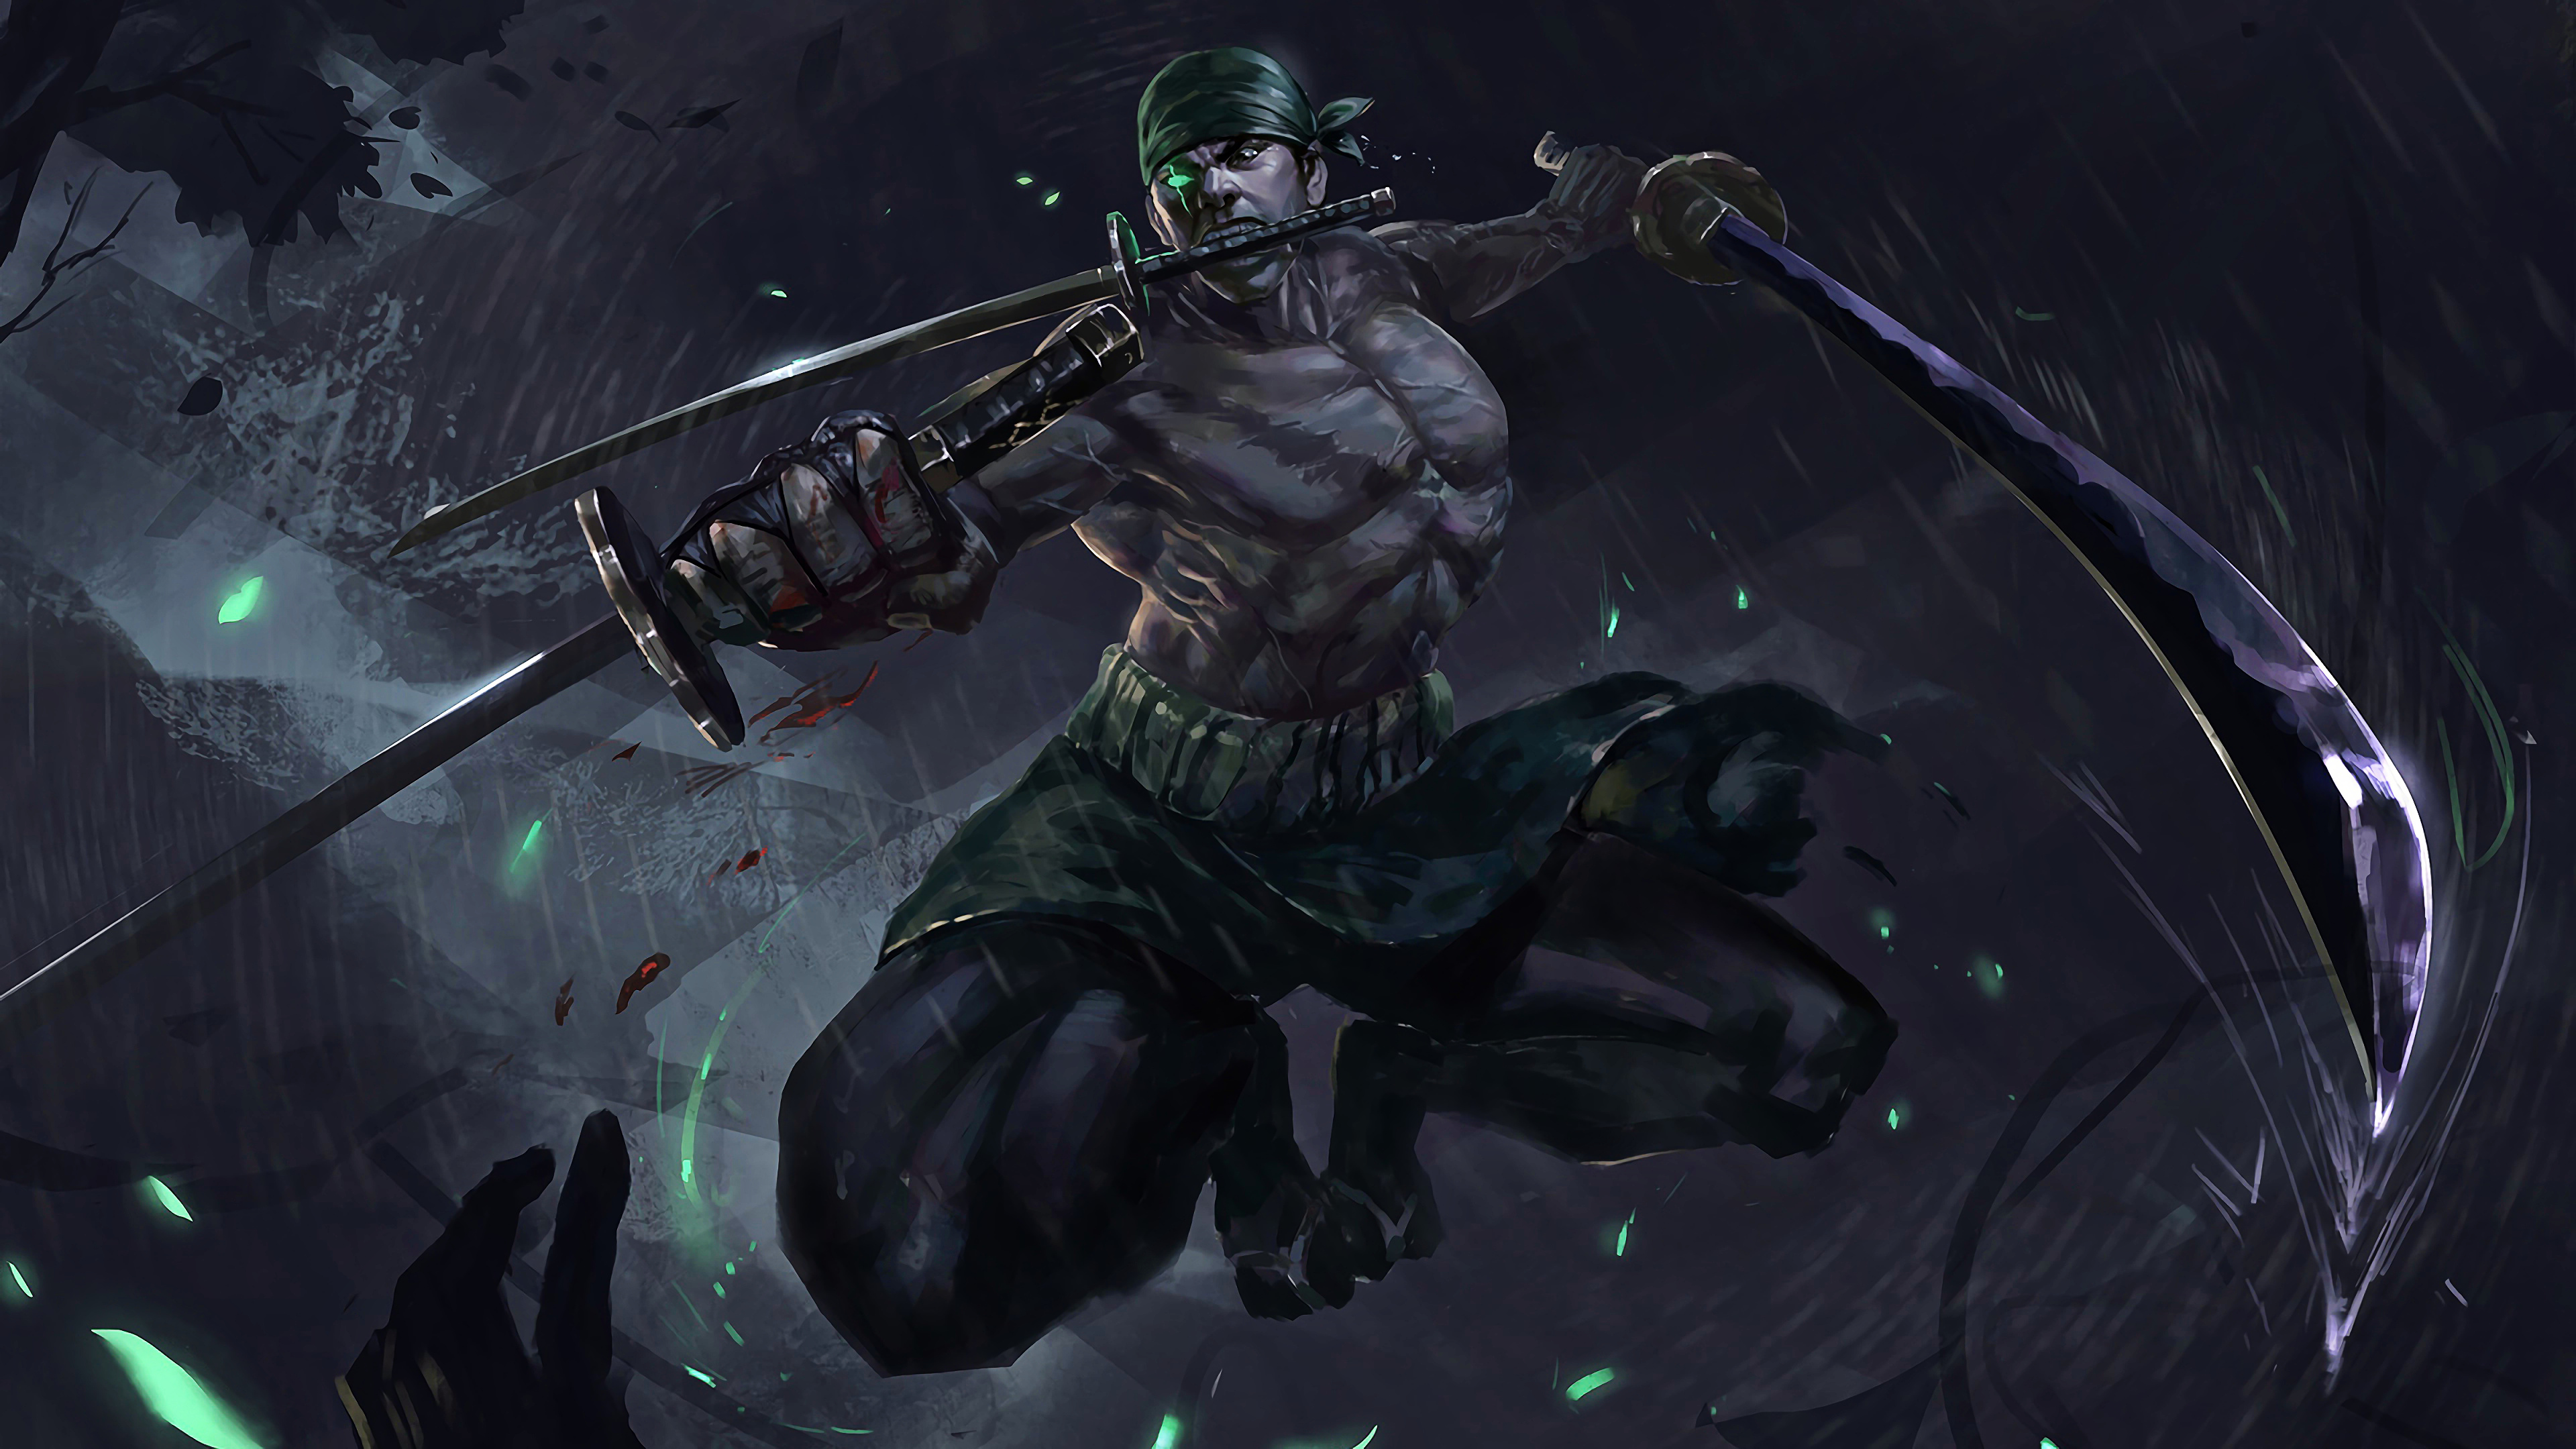 Hd High Resolution Wallpaper Roronoa Zoro Katana Sword One